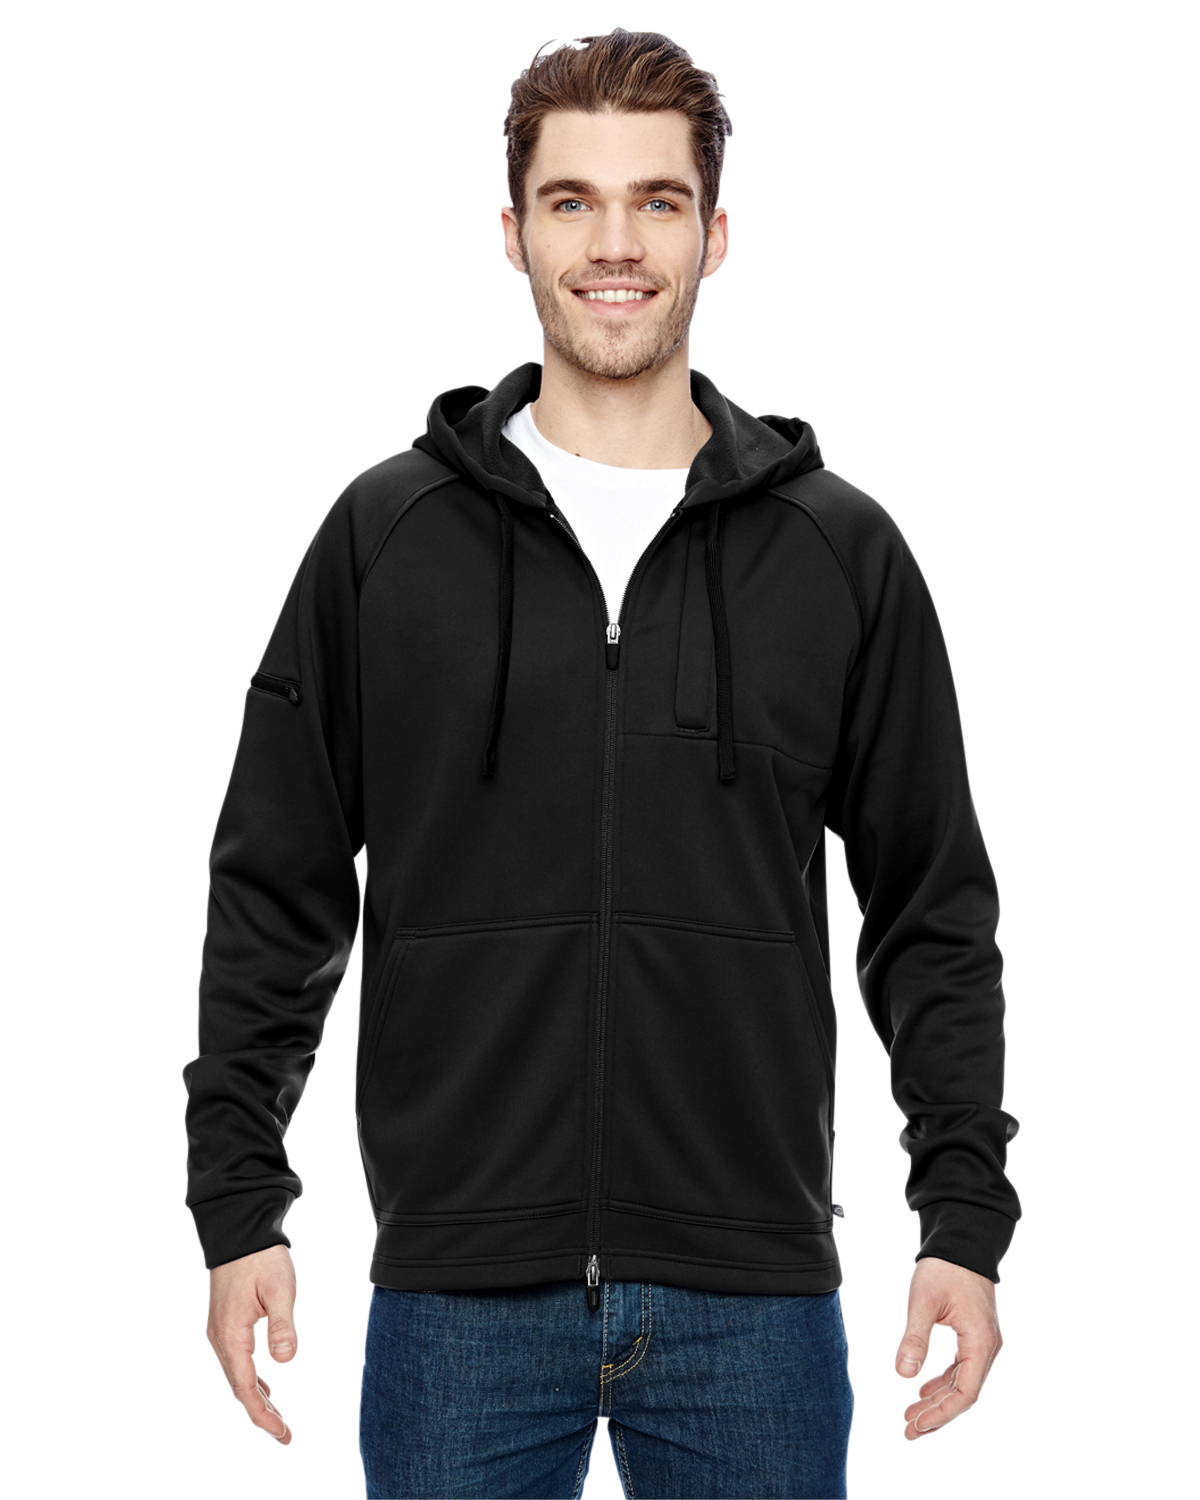 Dickies LJ536 - 7.4 oz. Tactical Full-Zip Fleece Jacket